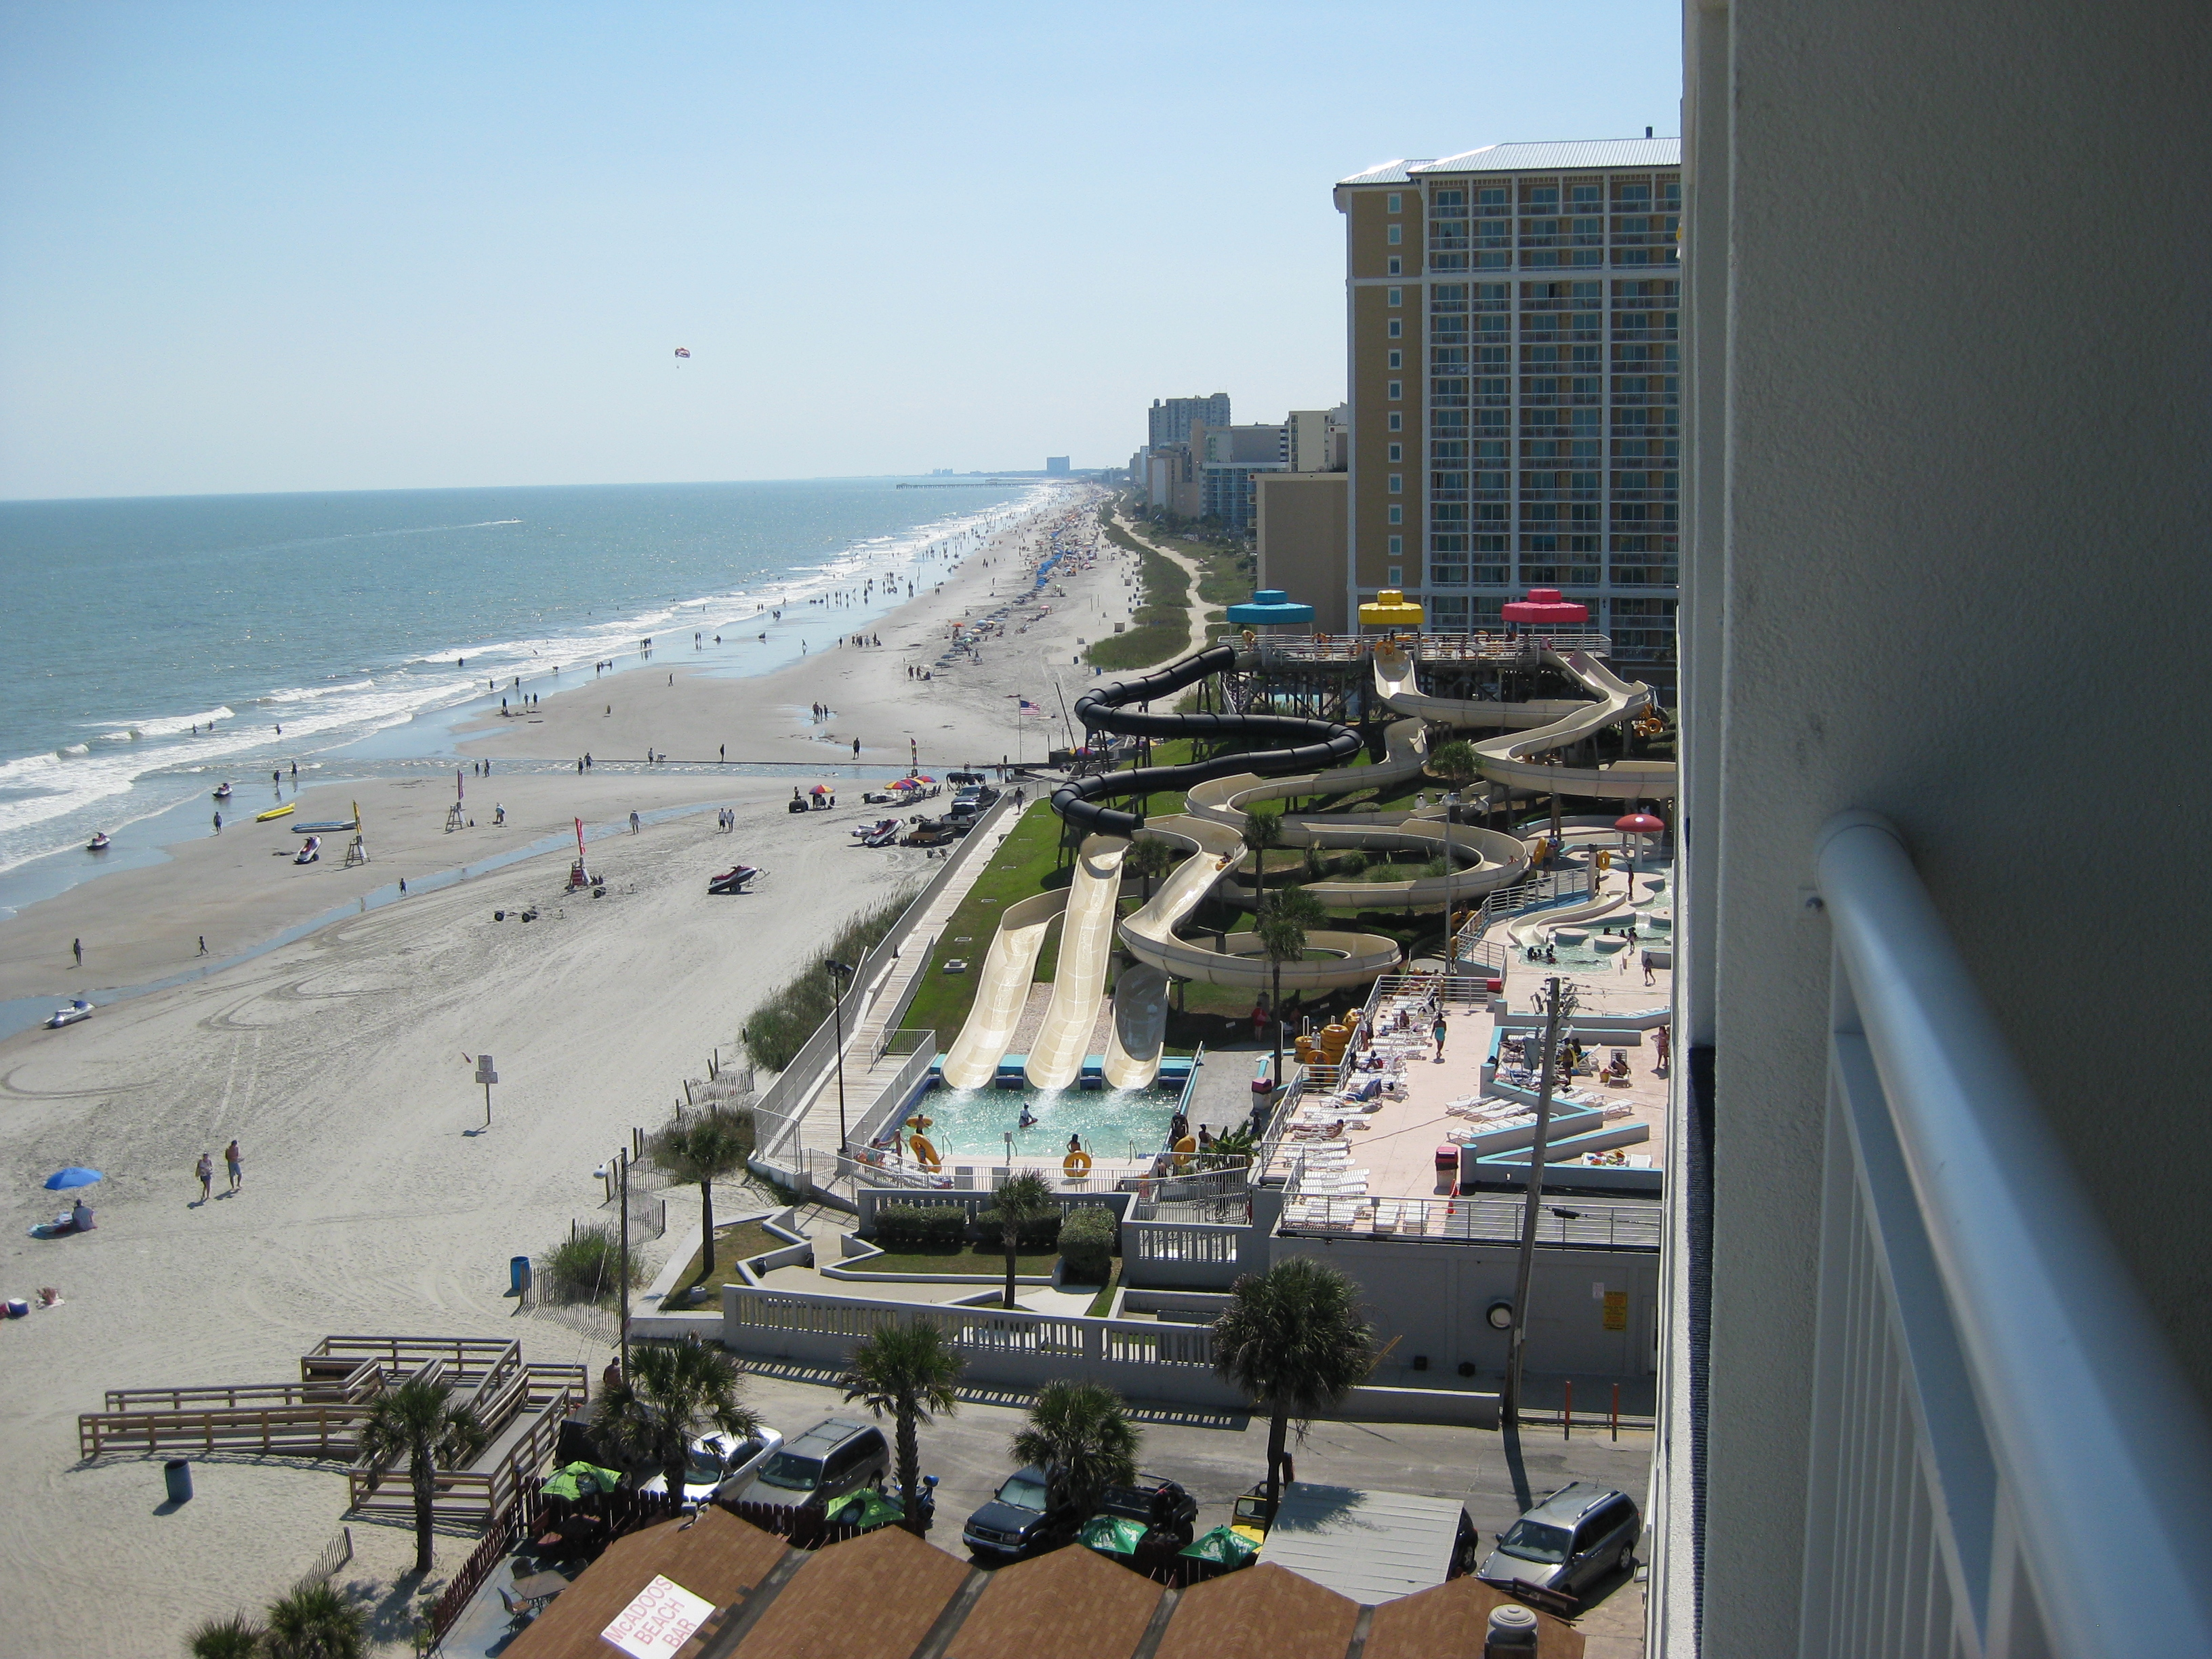 Overlooking the crowded beach, Beach, Hotel, Landscape, Overview, HQ Photo